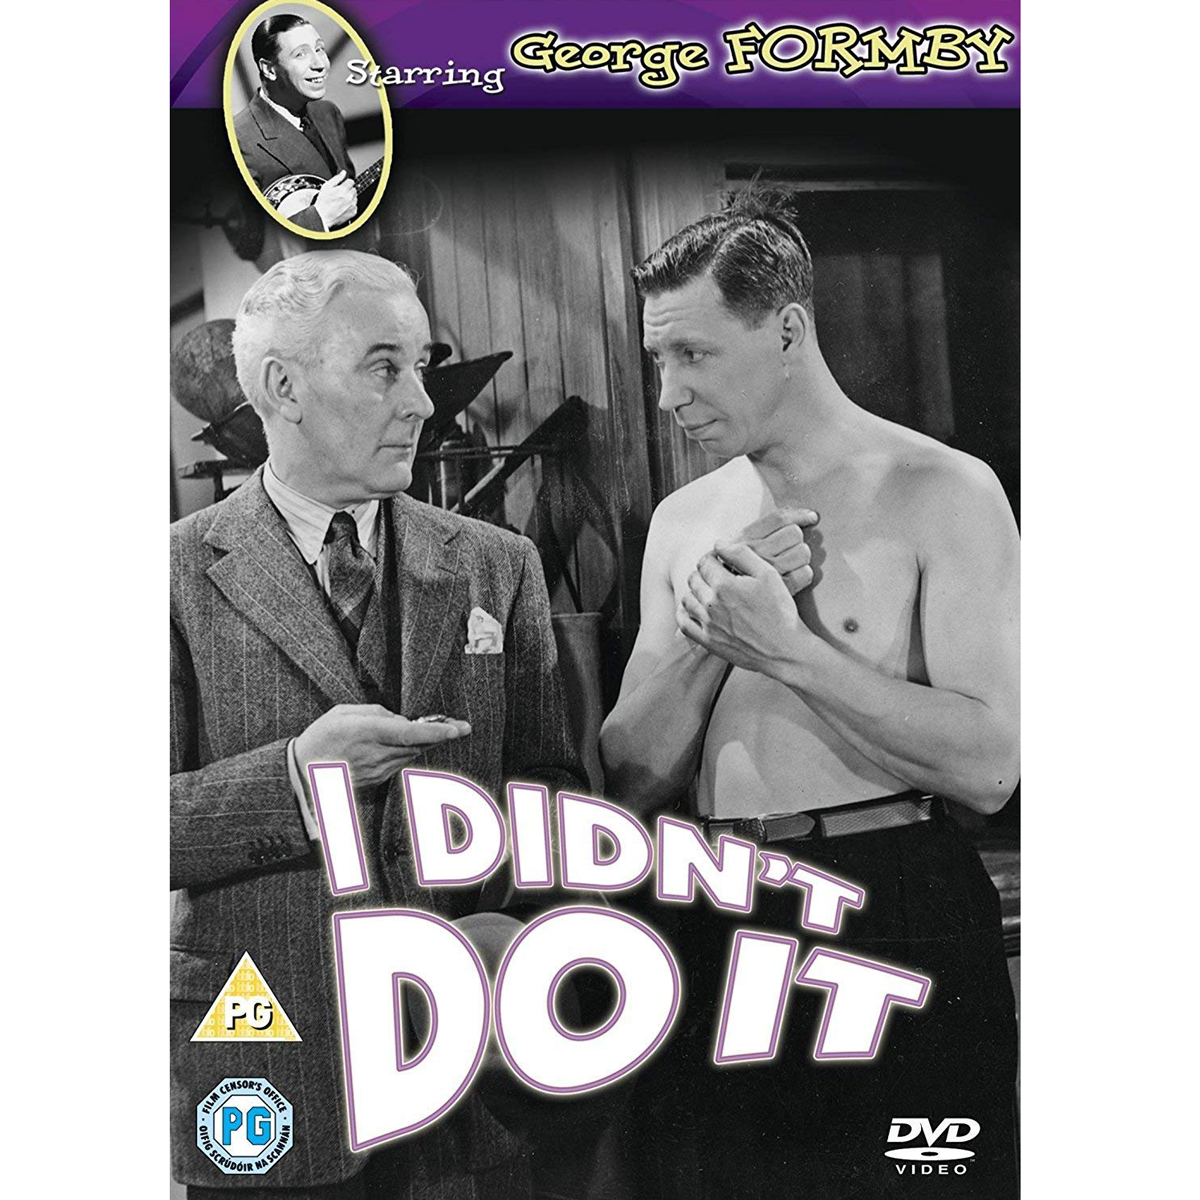 ISTYA I didnt do it 1945